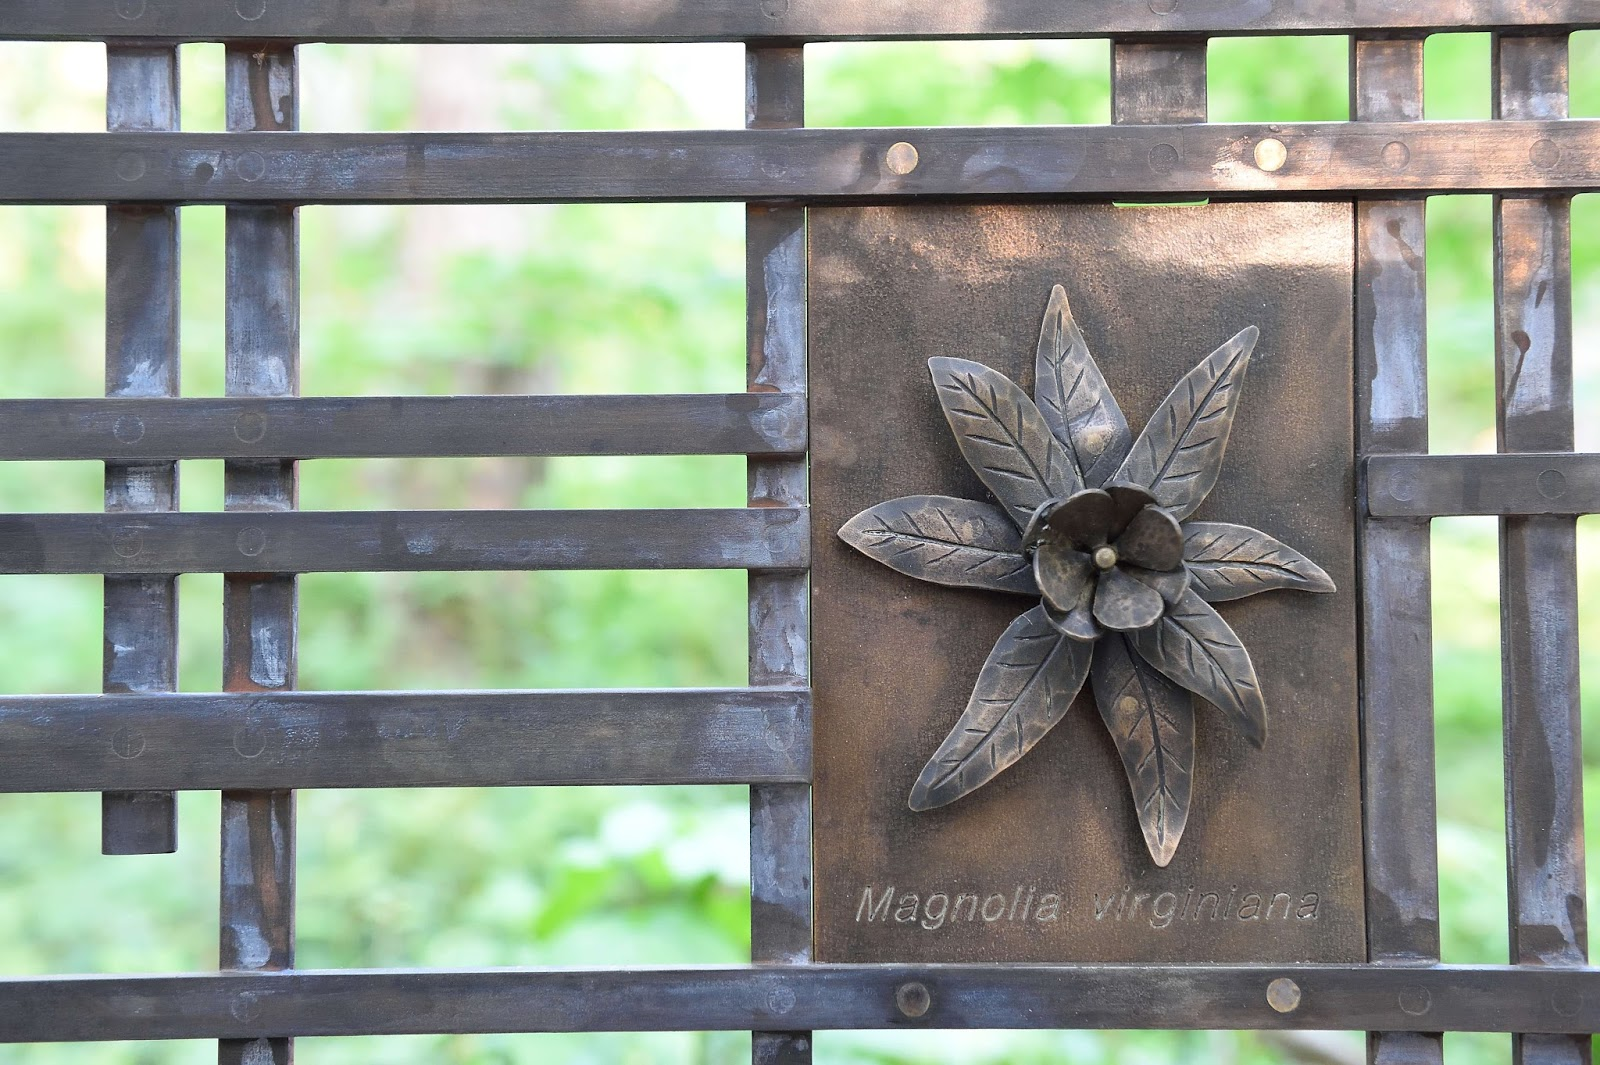 The wildlife garden in the h l blomquist garden of native plants - Close Up Of Metalwork On The Mcnabb Family Bridge Photo By Bob Ayers